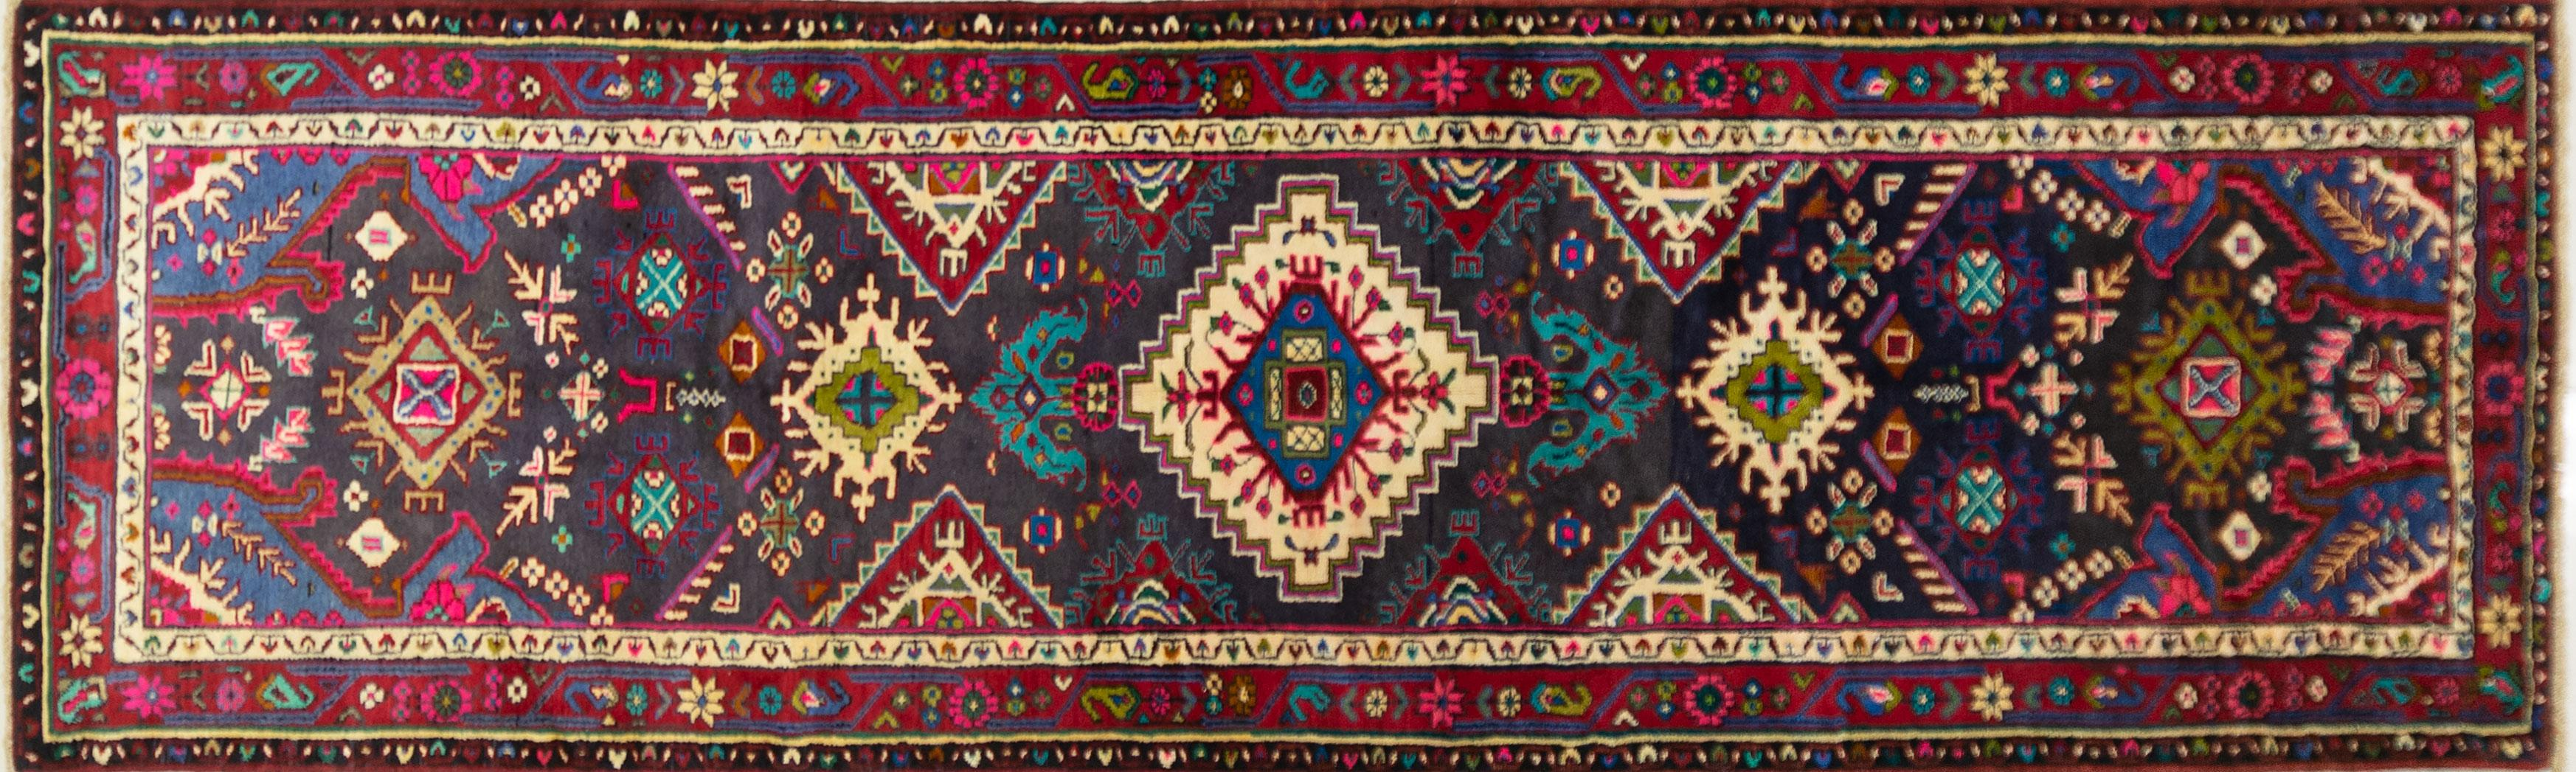 A Persian Hand Knotted Hamadan Runner, 330 x 100